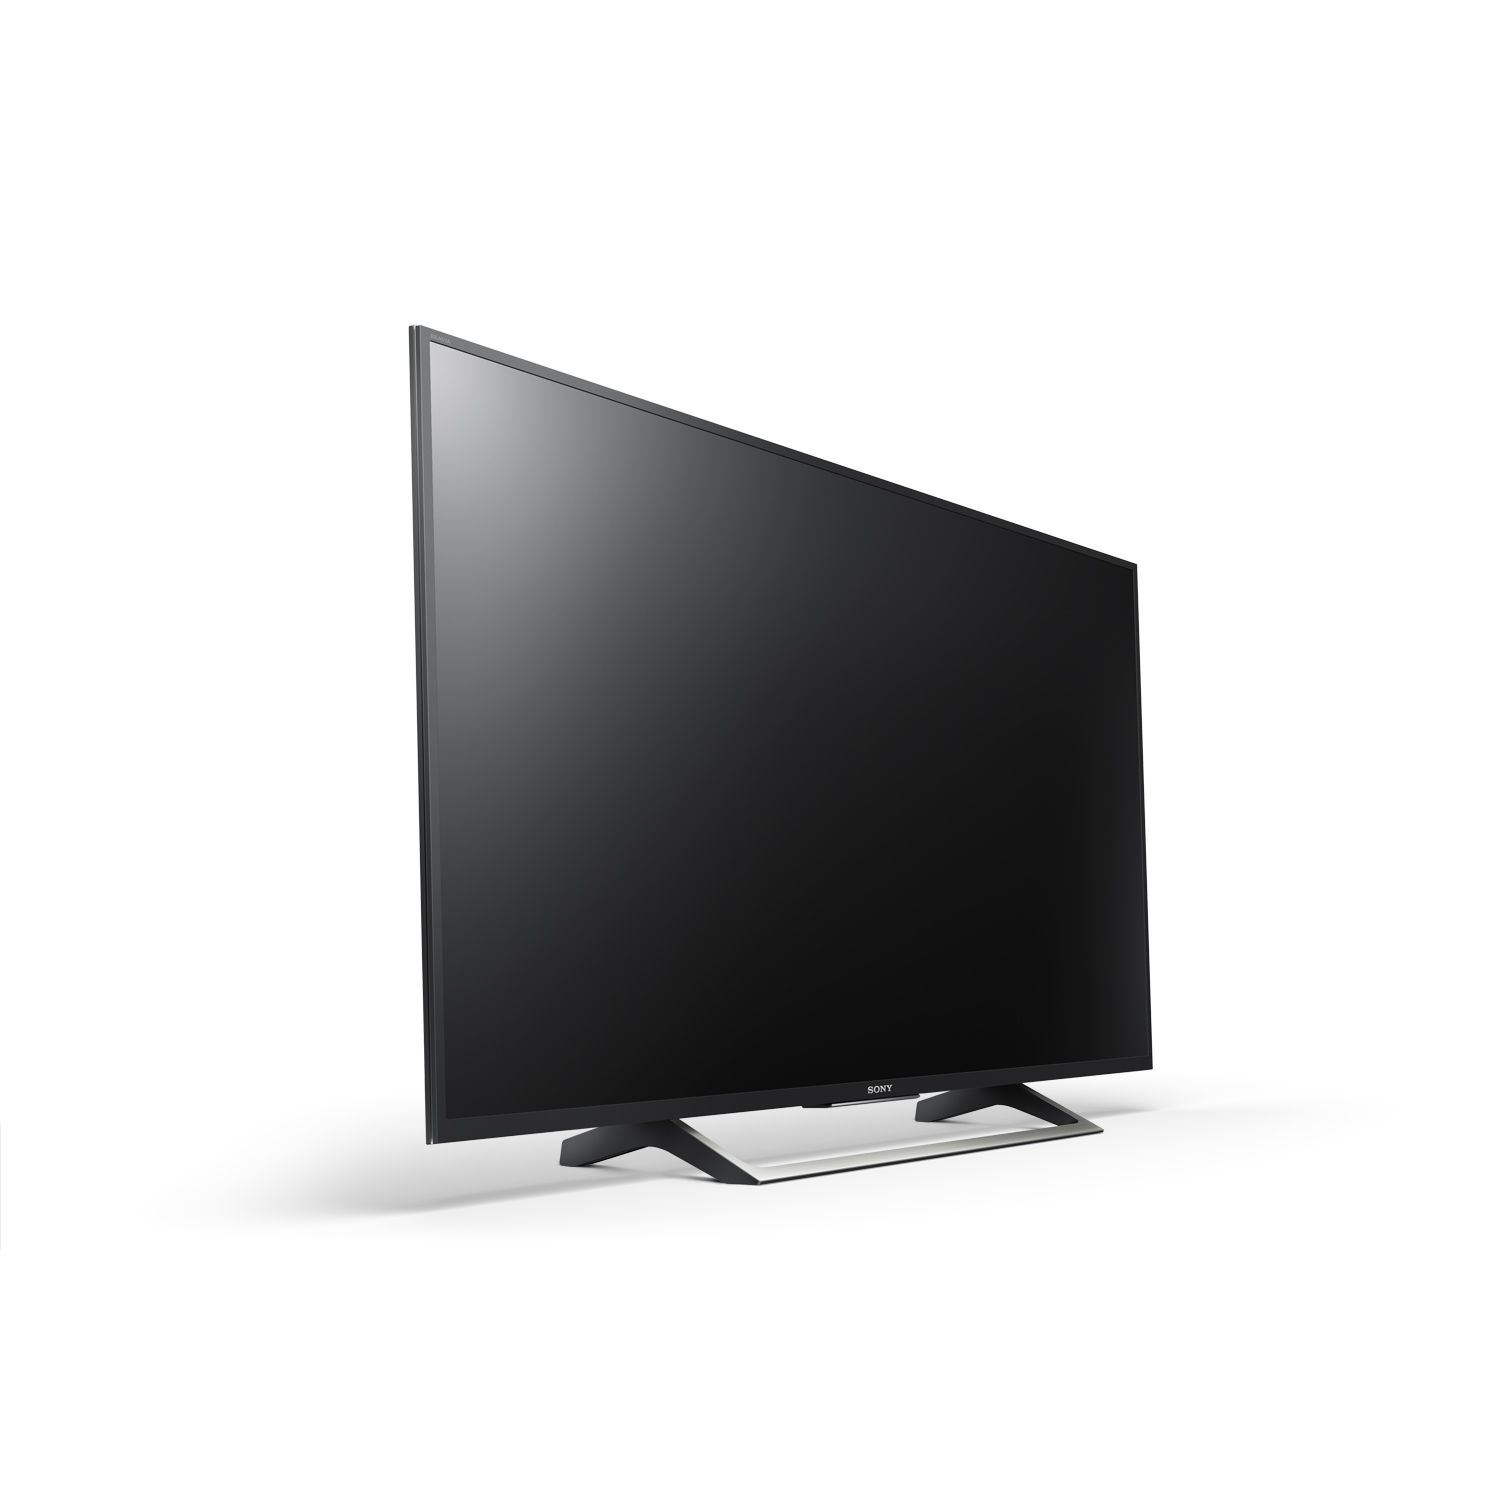 market analysis sony bravia Updated key statistics for sony corp adr - including sne margins, p/e ratio, valuation, profitability, company description, and other stock analysis data.